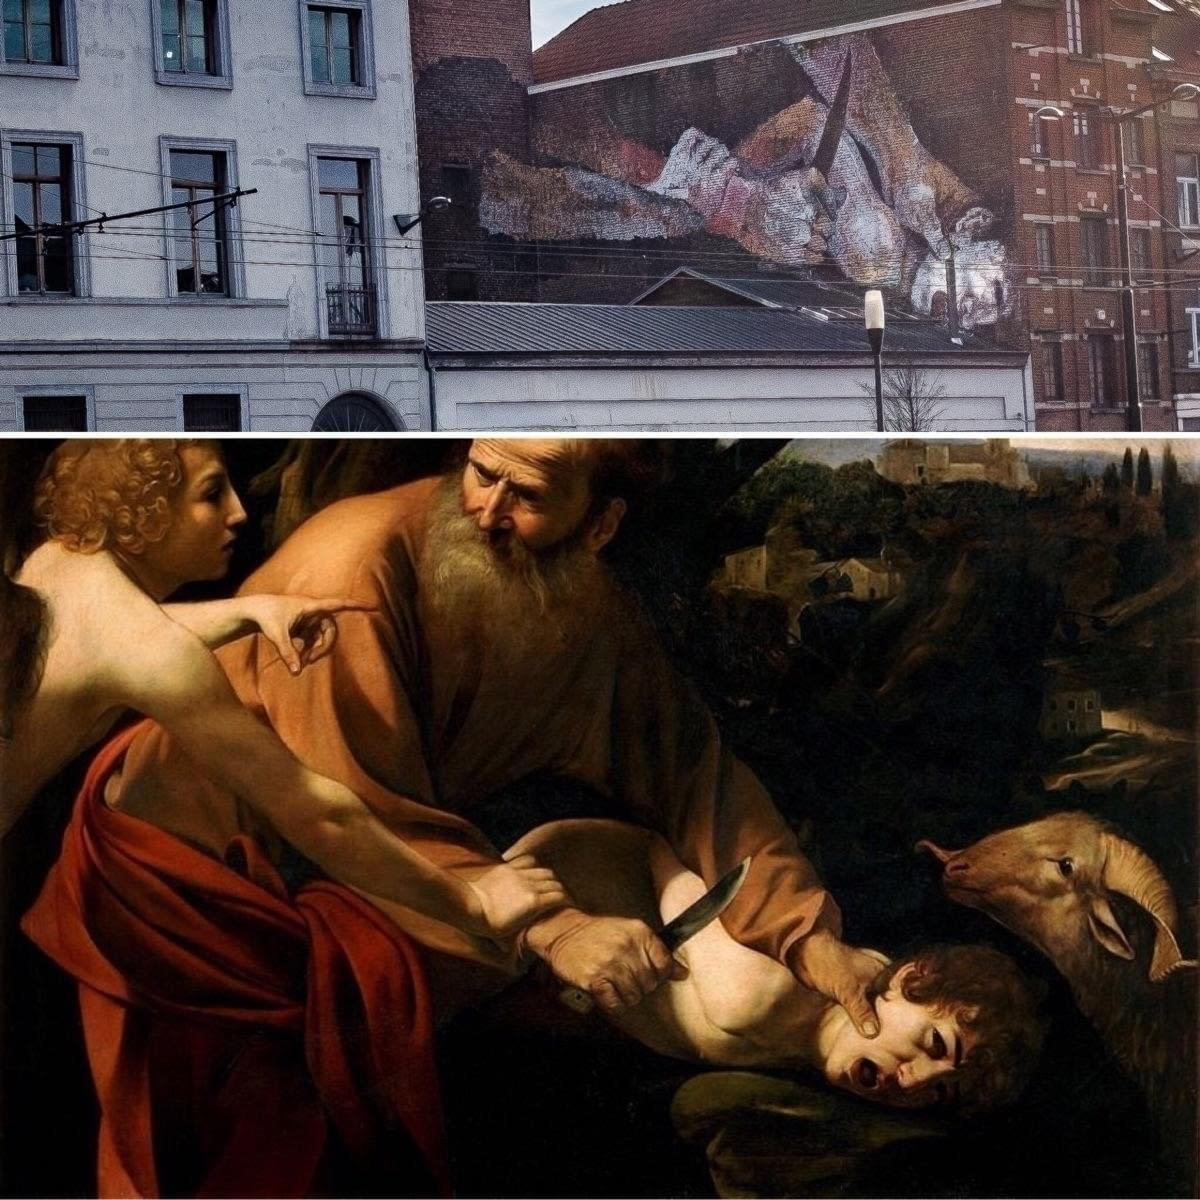 The painting is located on a building by the Porte de Flandre. It is a reproduction of detail from a work by 16th-century Italian painter Caravaggio. It depicts the patriarch Abraham about to sacrifice his son Isaac on God's orders, only to be restrained by an angel. The original (pictured) hangs in the Uffizi gallery in Florence.